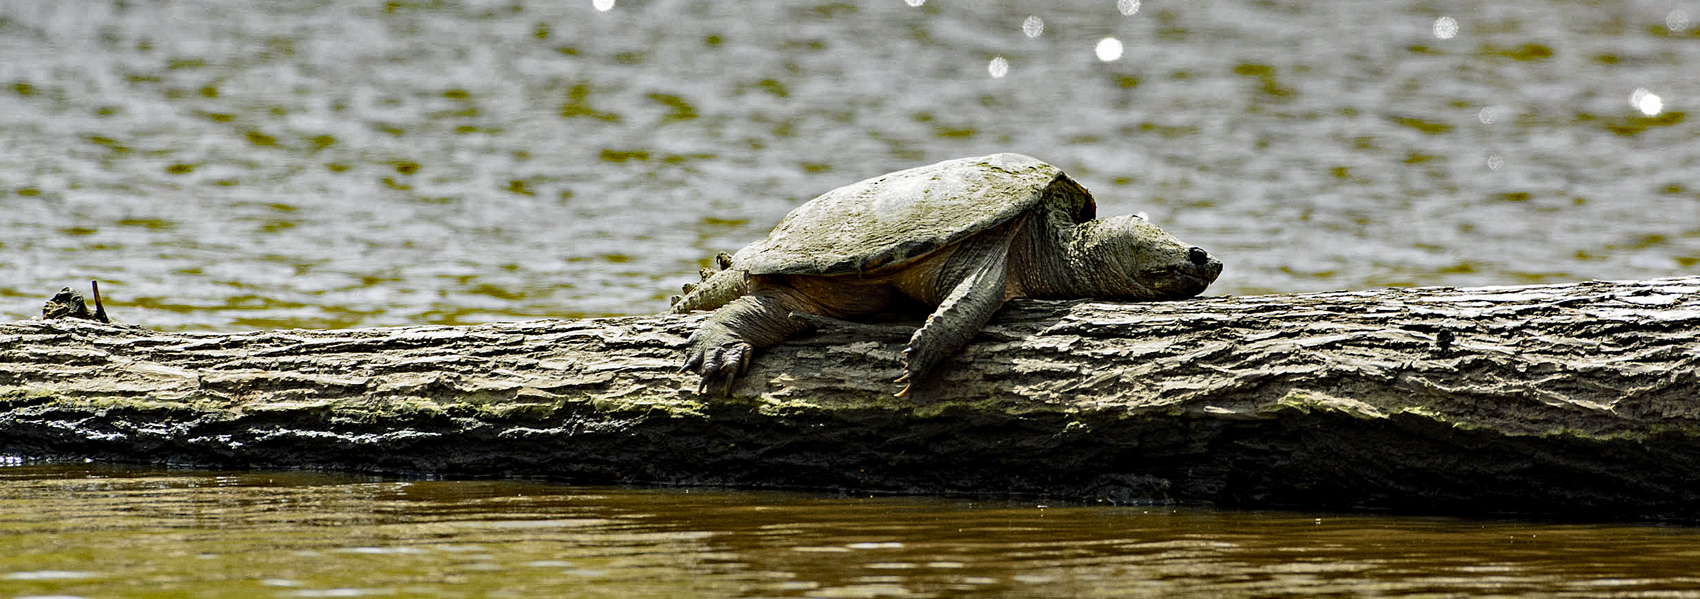 A snapping turtle lies flopped and contentedly on a log